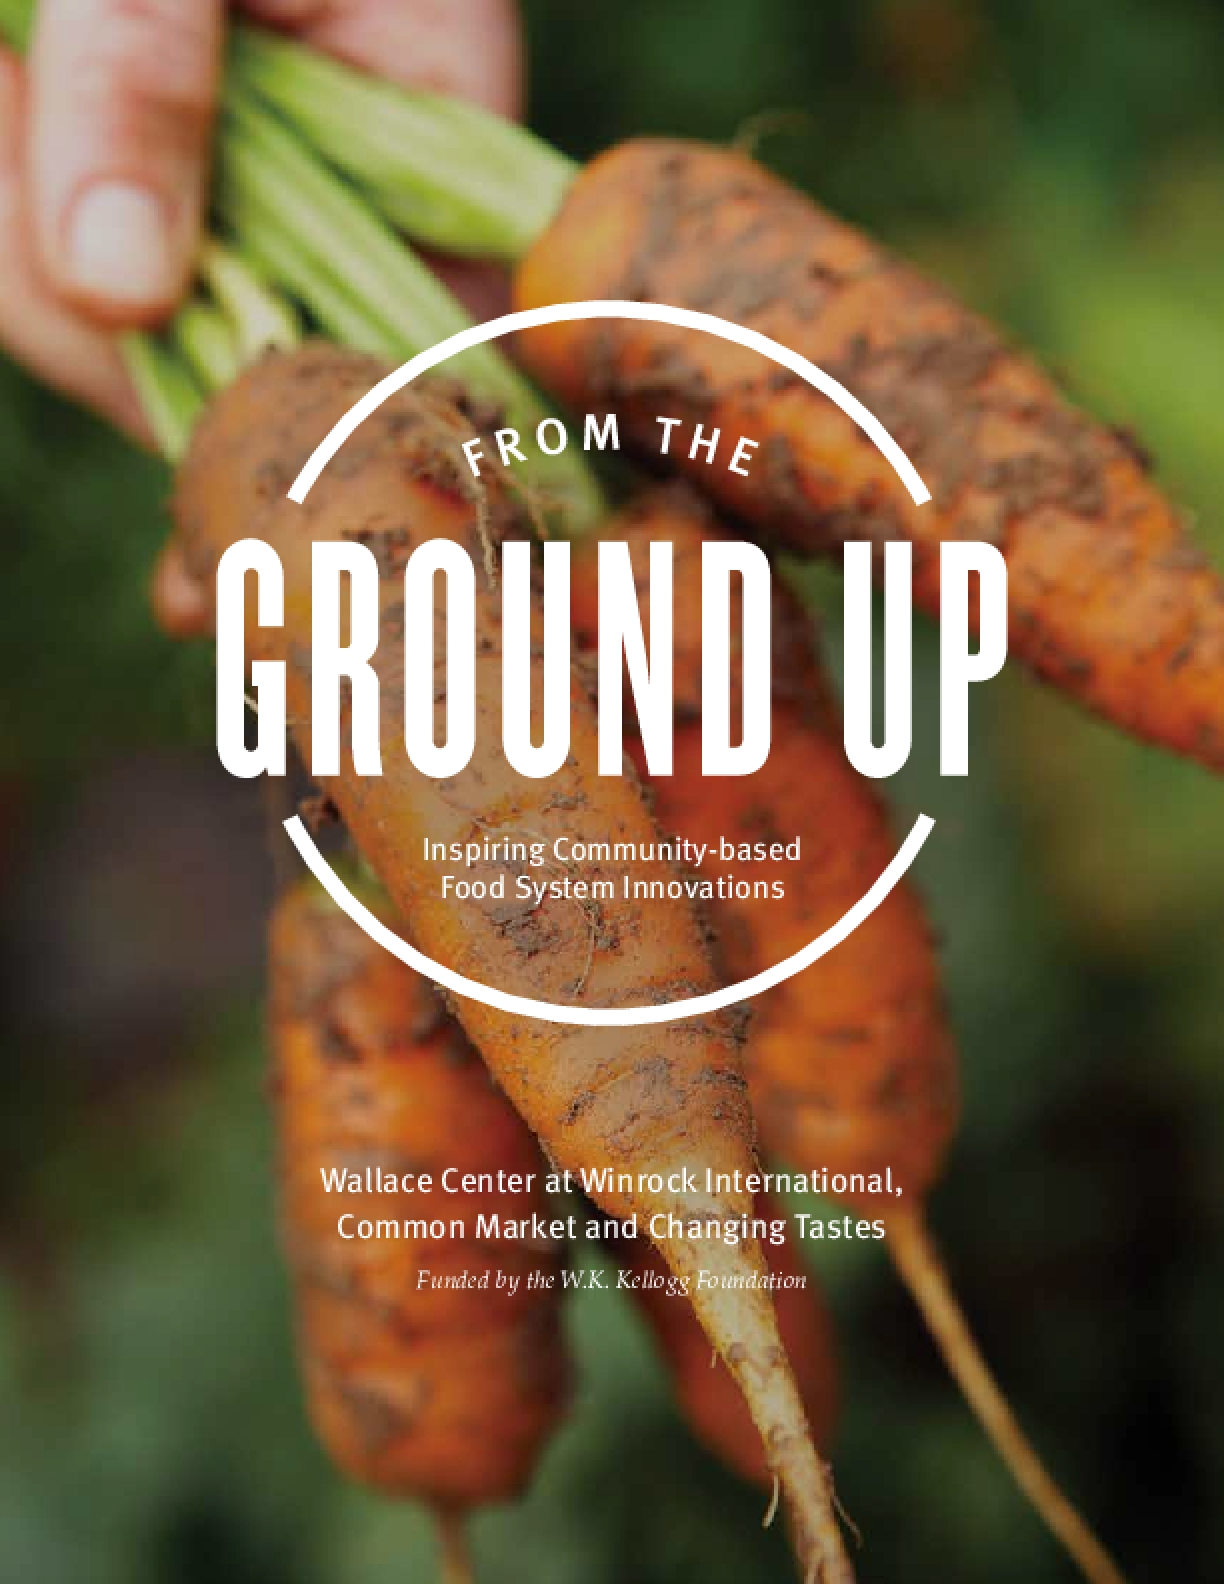 From the Ground Up: Inspiring Community-Based Food System Innovations